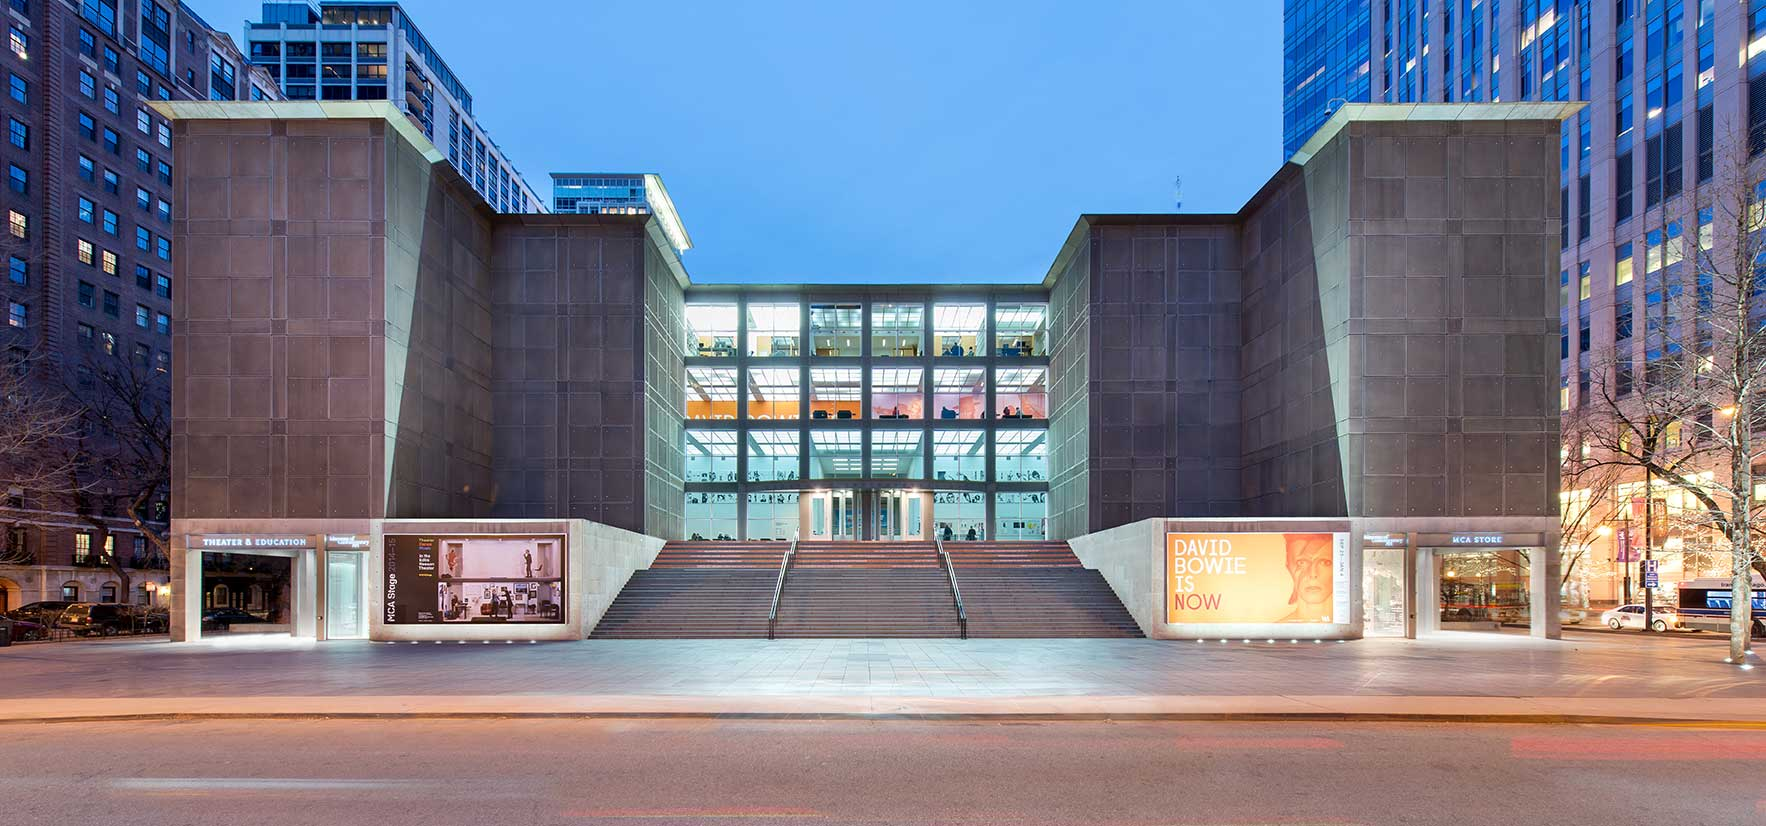 Photograph of MCA: Museum of Contemporary Art, Chicago at dusk.